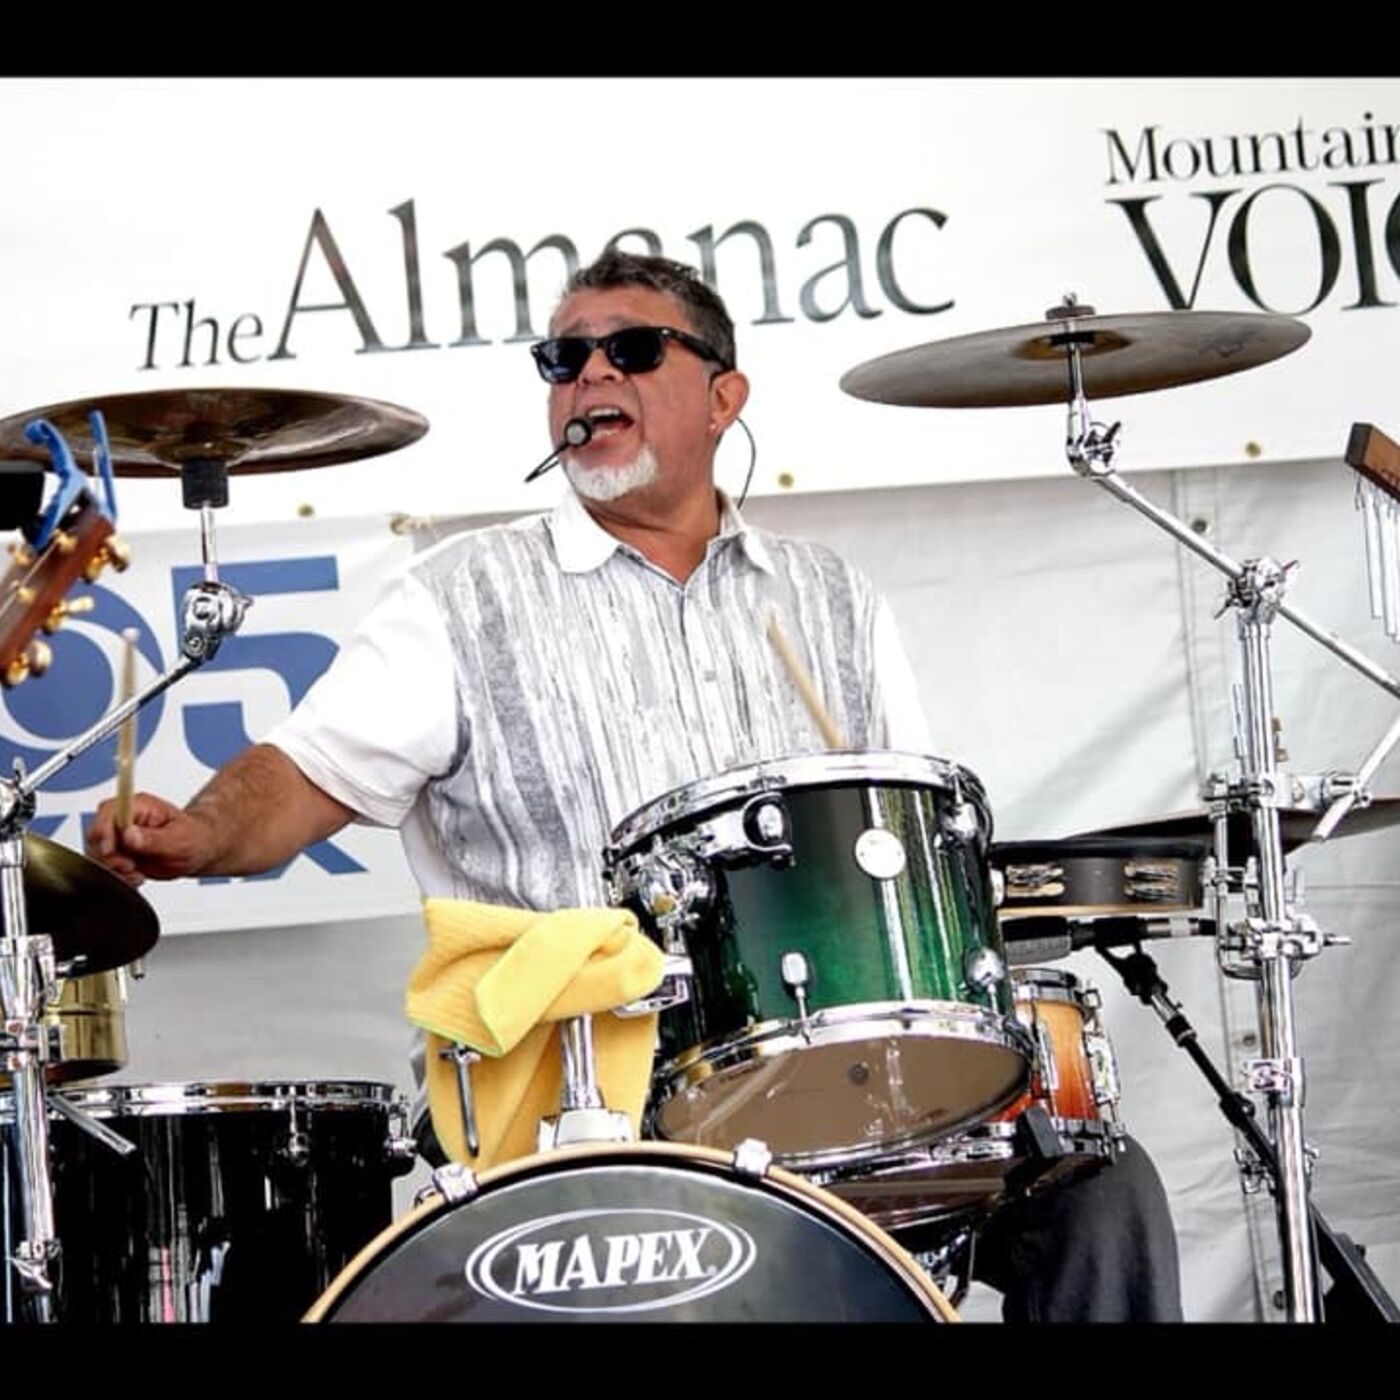 An Interview with Andy Morales, One of the Most Sought-After Musicians in Northern California